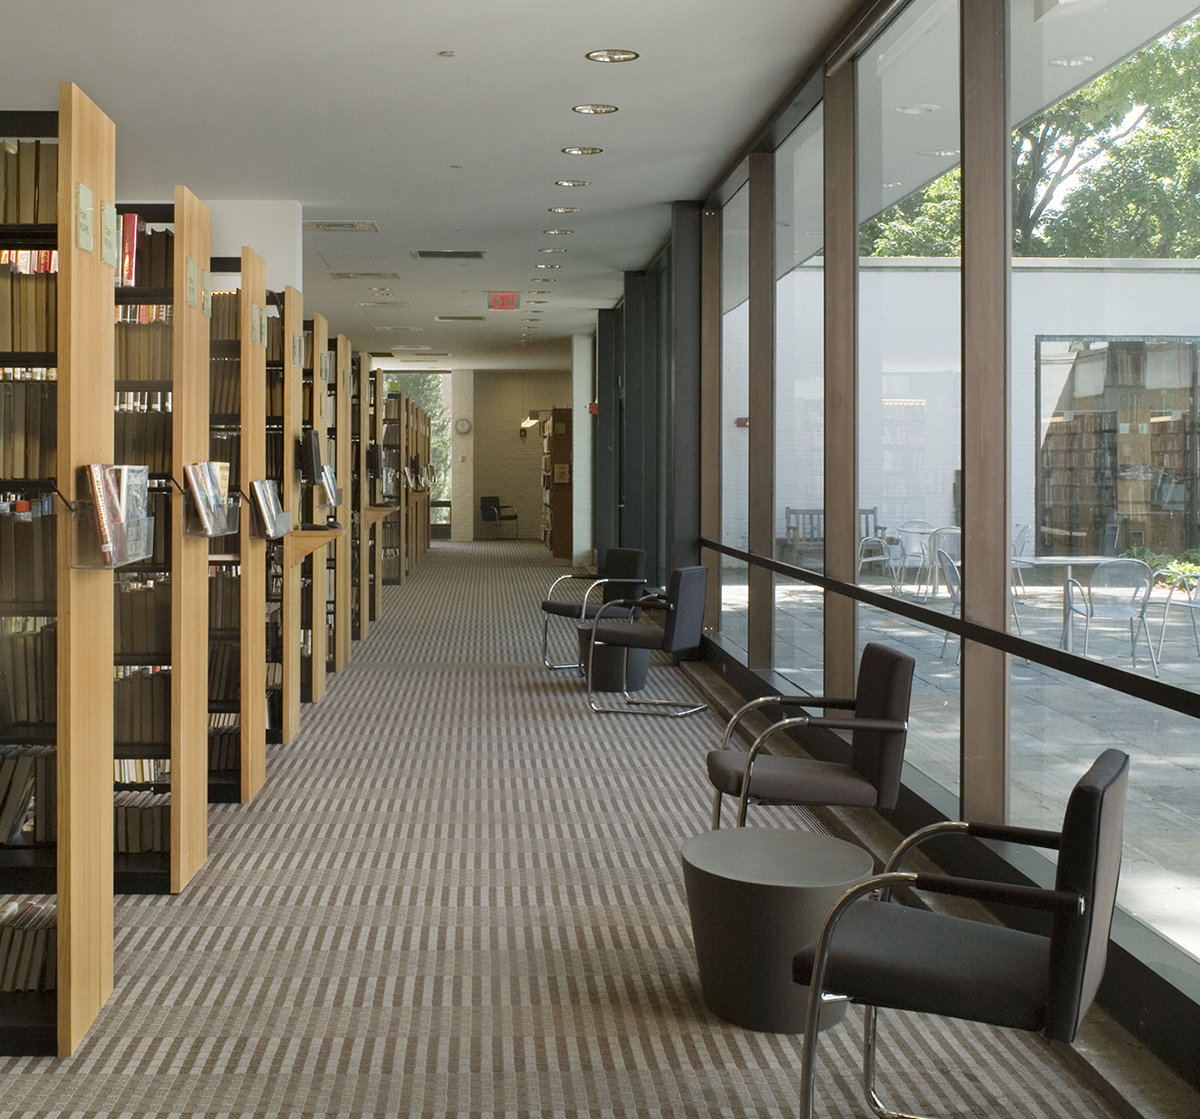 9 tskp wilton wilton library interior seating area next to aisles 1400 0x451x1200x1119 q85